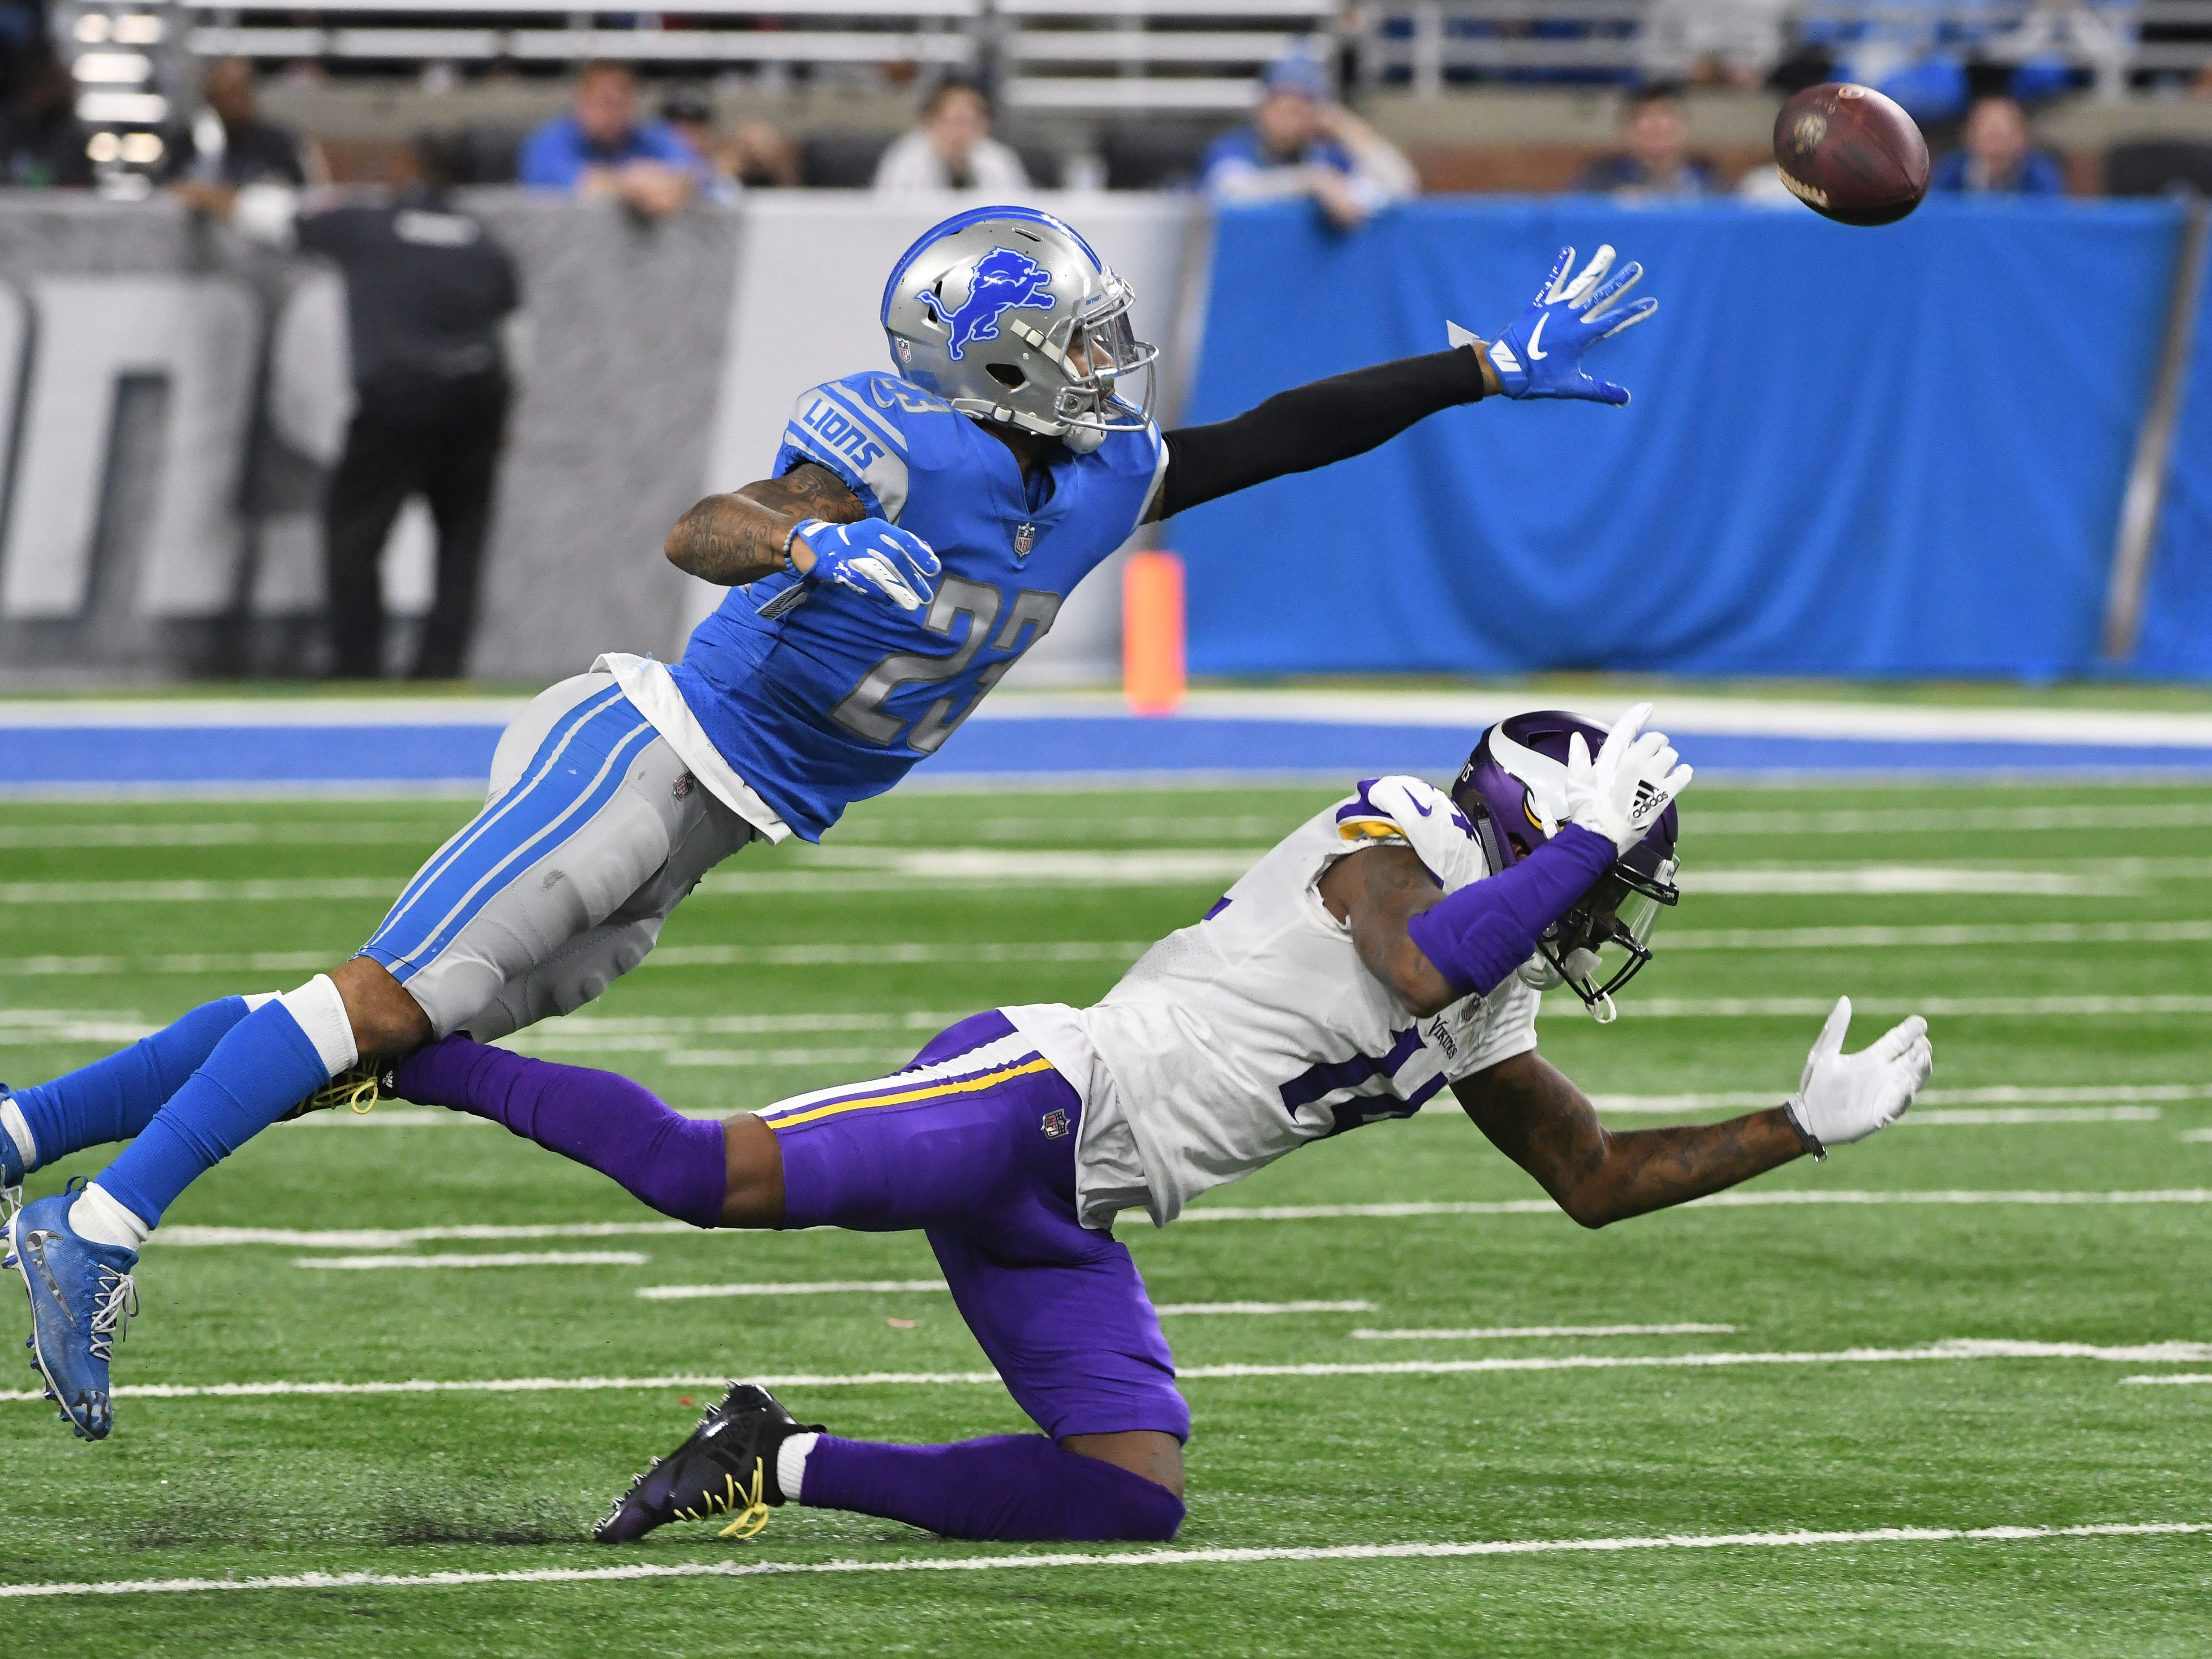 Lions' Darius Slay breaks up a reception intended for Vikings' Stefon Diggs in the fourth quarter.